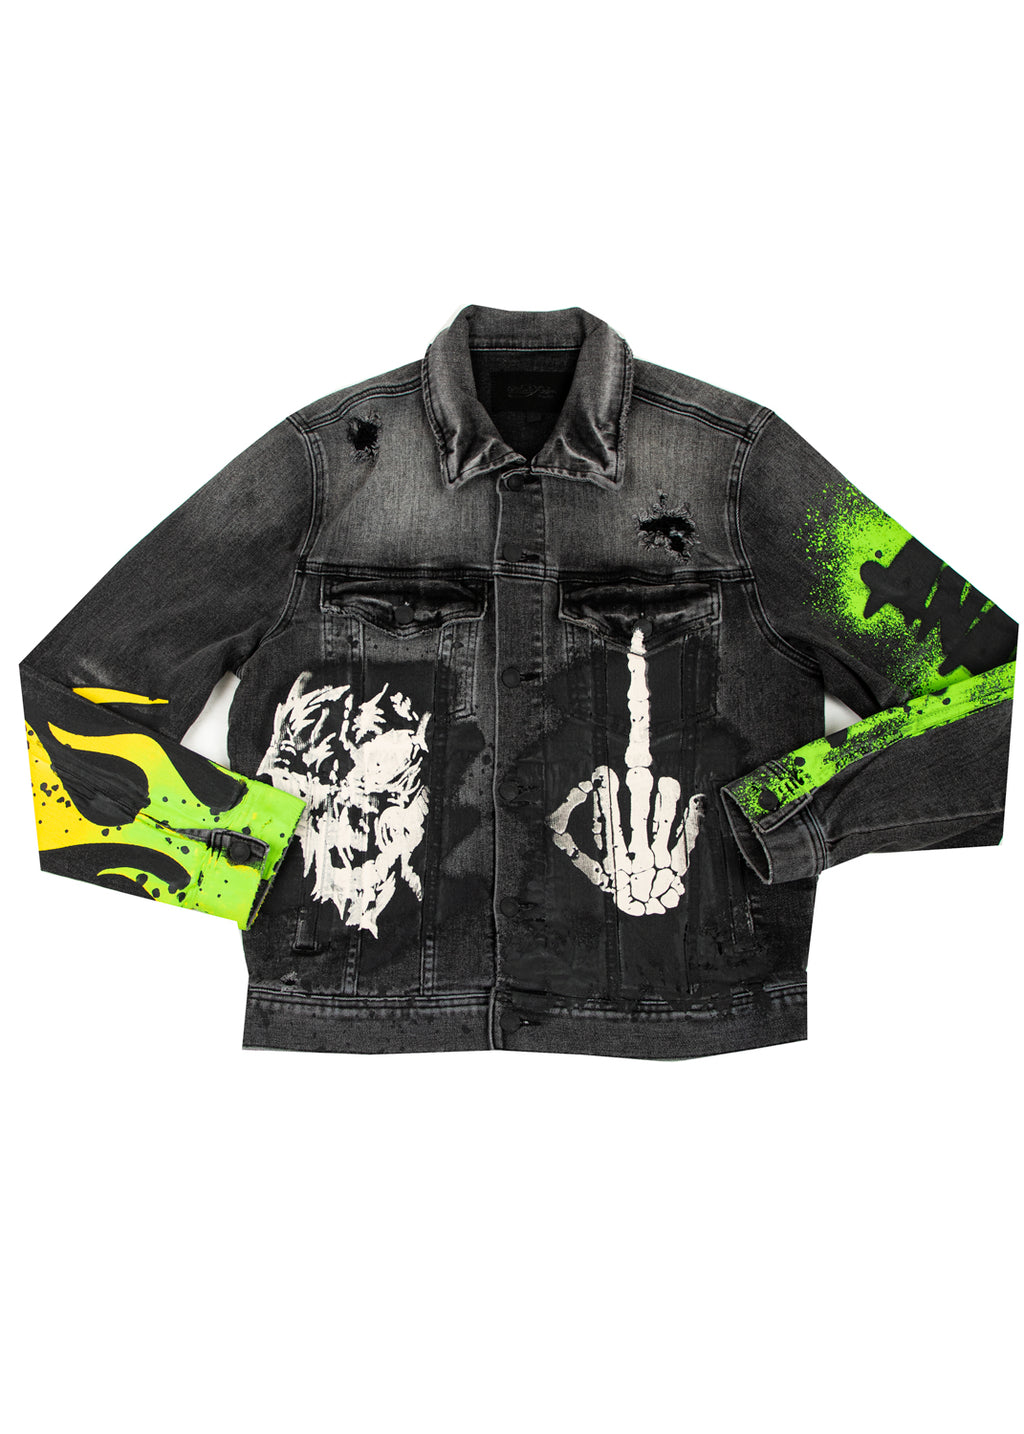 ANARCHY PRINTED DENIM JACKET DARK